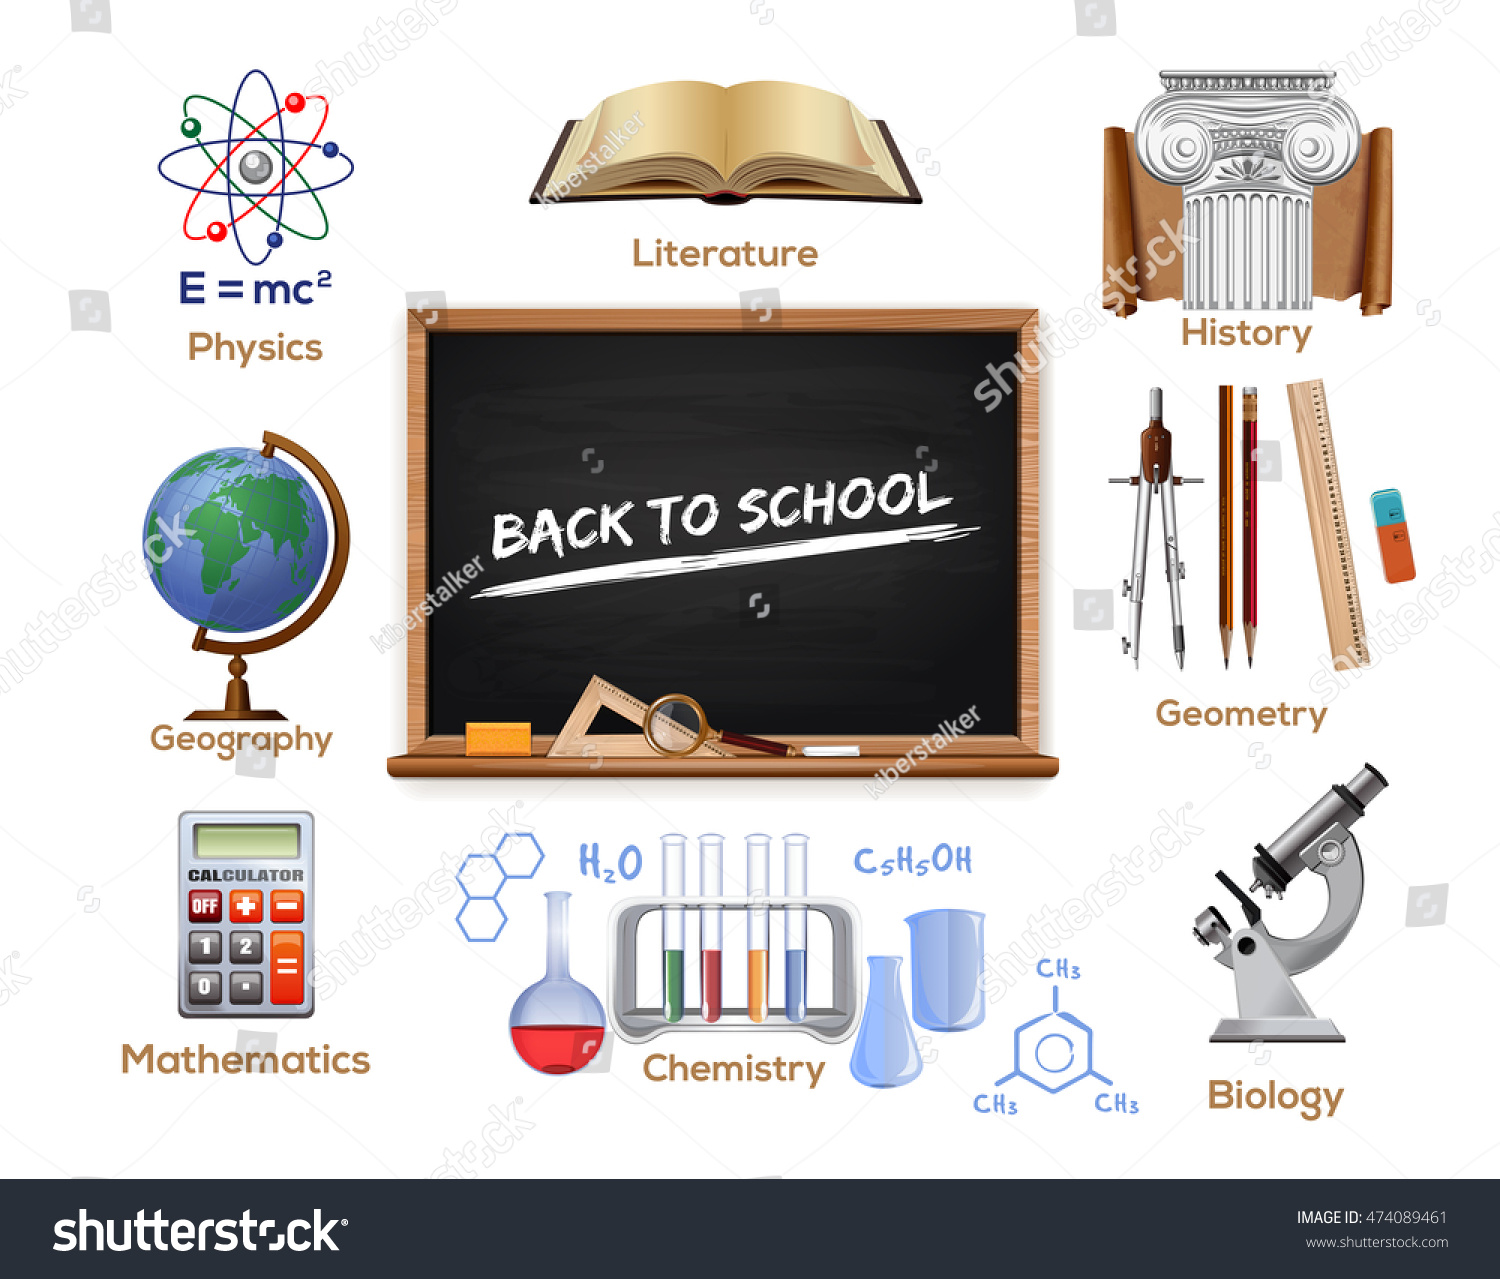 Deciding stock illustrations royalty free gograph - Set School Icons School Subjects Physics Literature History Geometry Biology